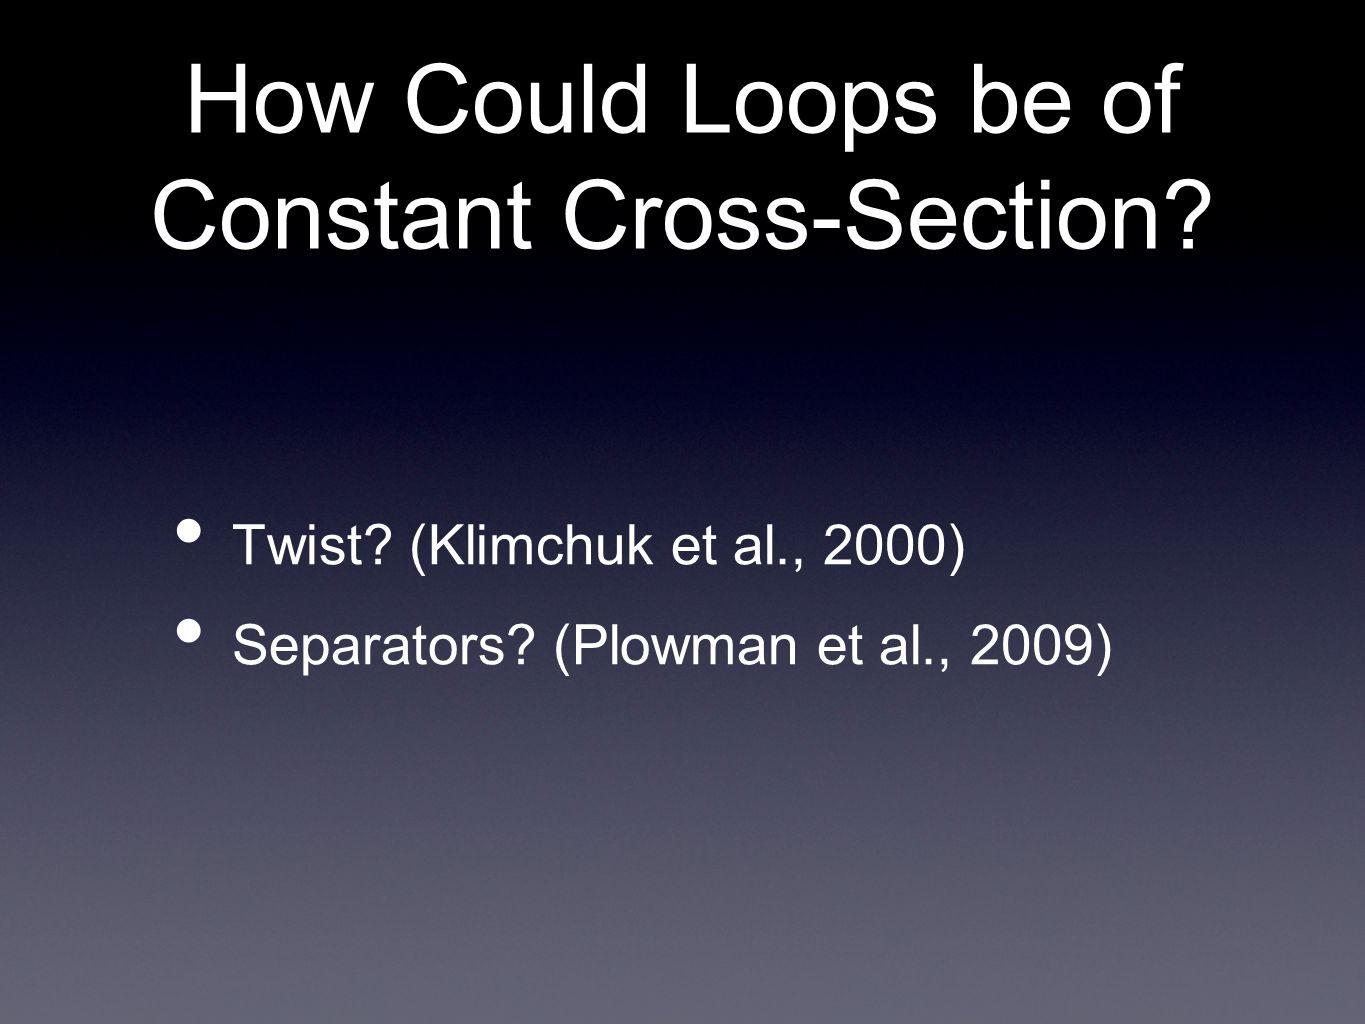 How Could Loops be of Constant Cross-Section? Twist? (Klimchuk et al., 2000)